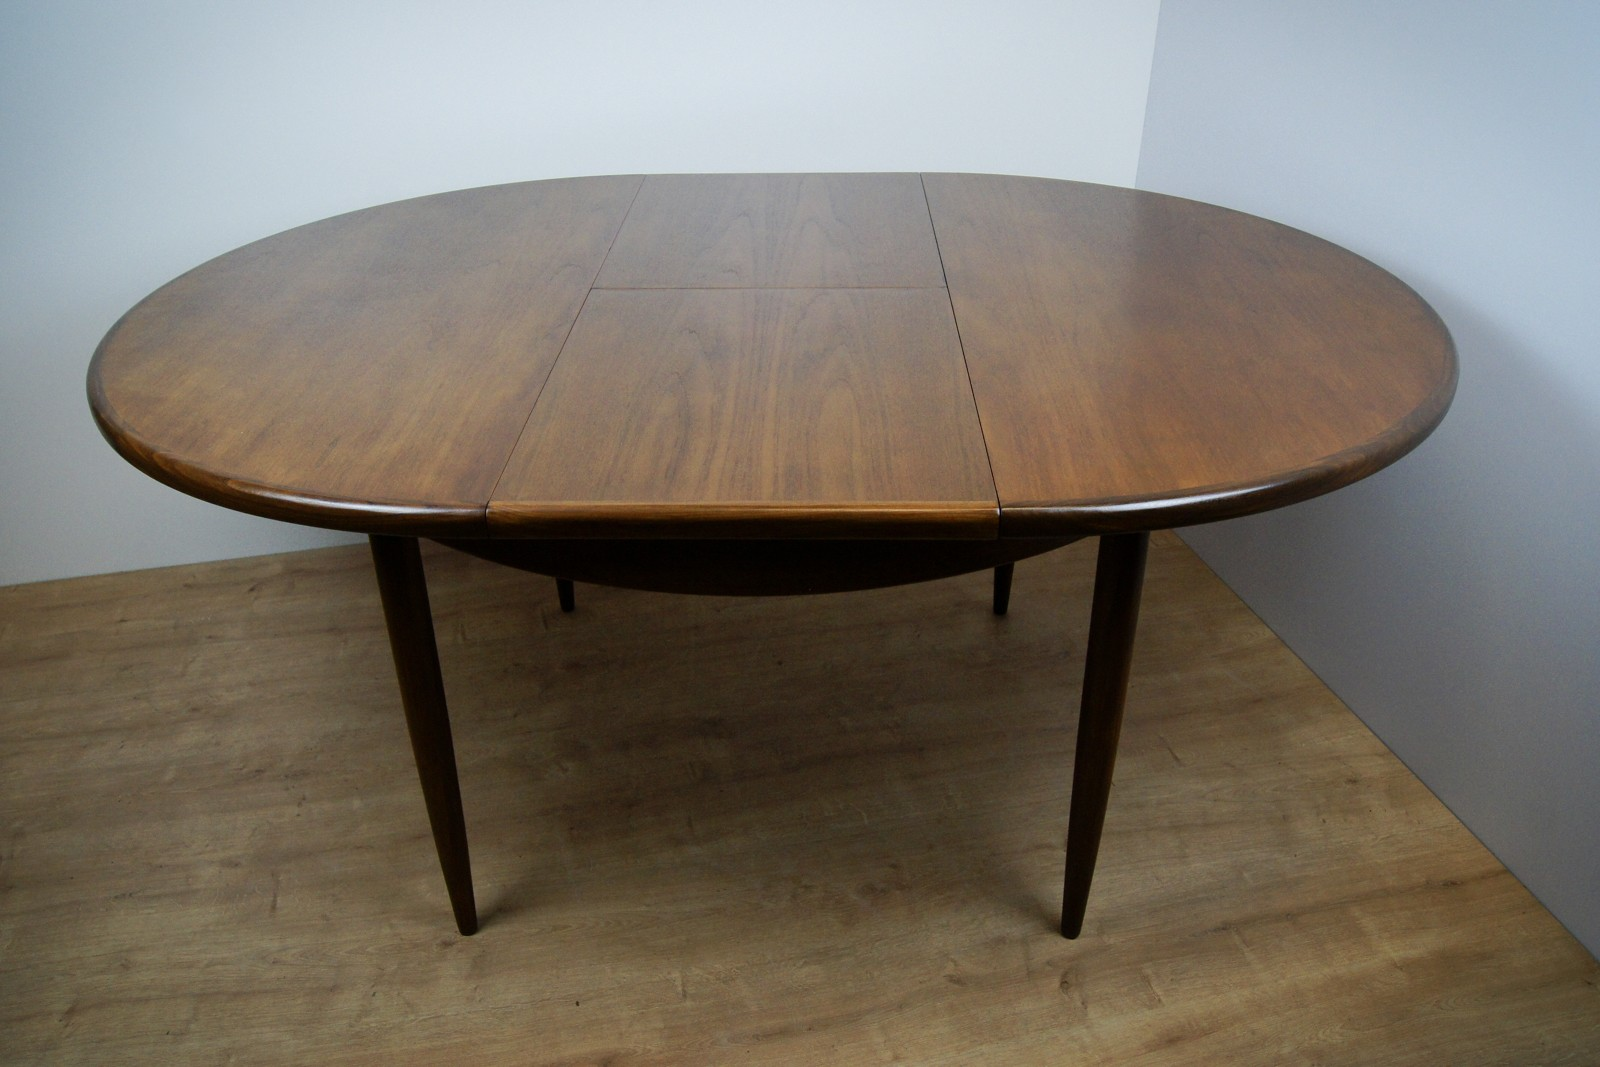 vintage oval extendable teak dining table from g plan. Black Bedroom Furniture Sets. Home Design Ideas